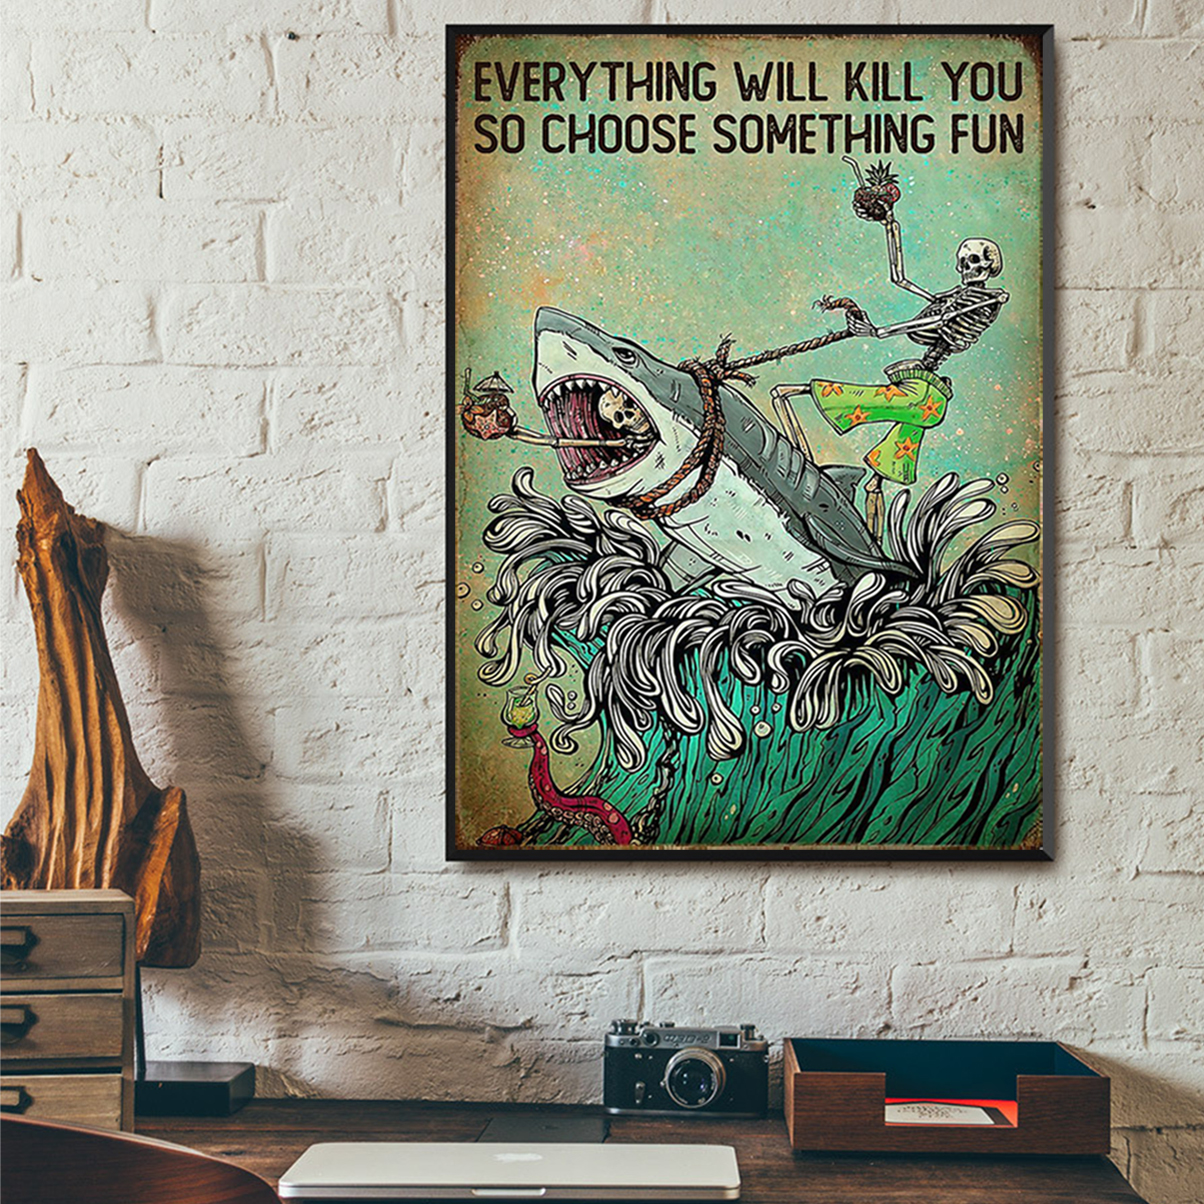 Skeleton shark everything will kill you so choose something fun poster A2